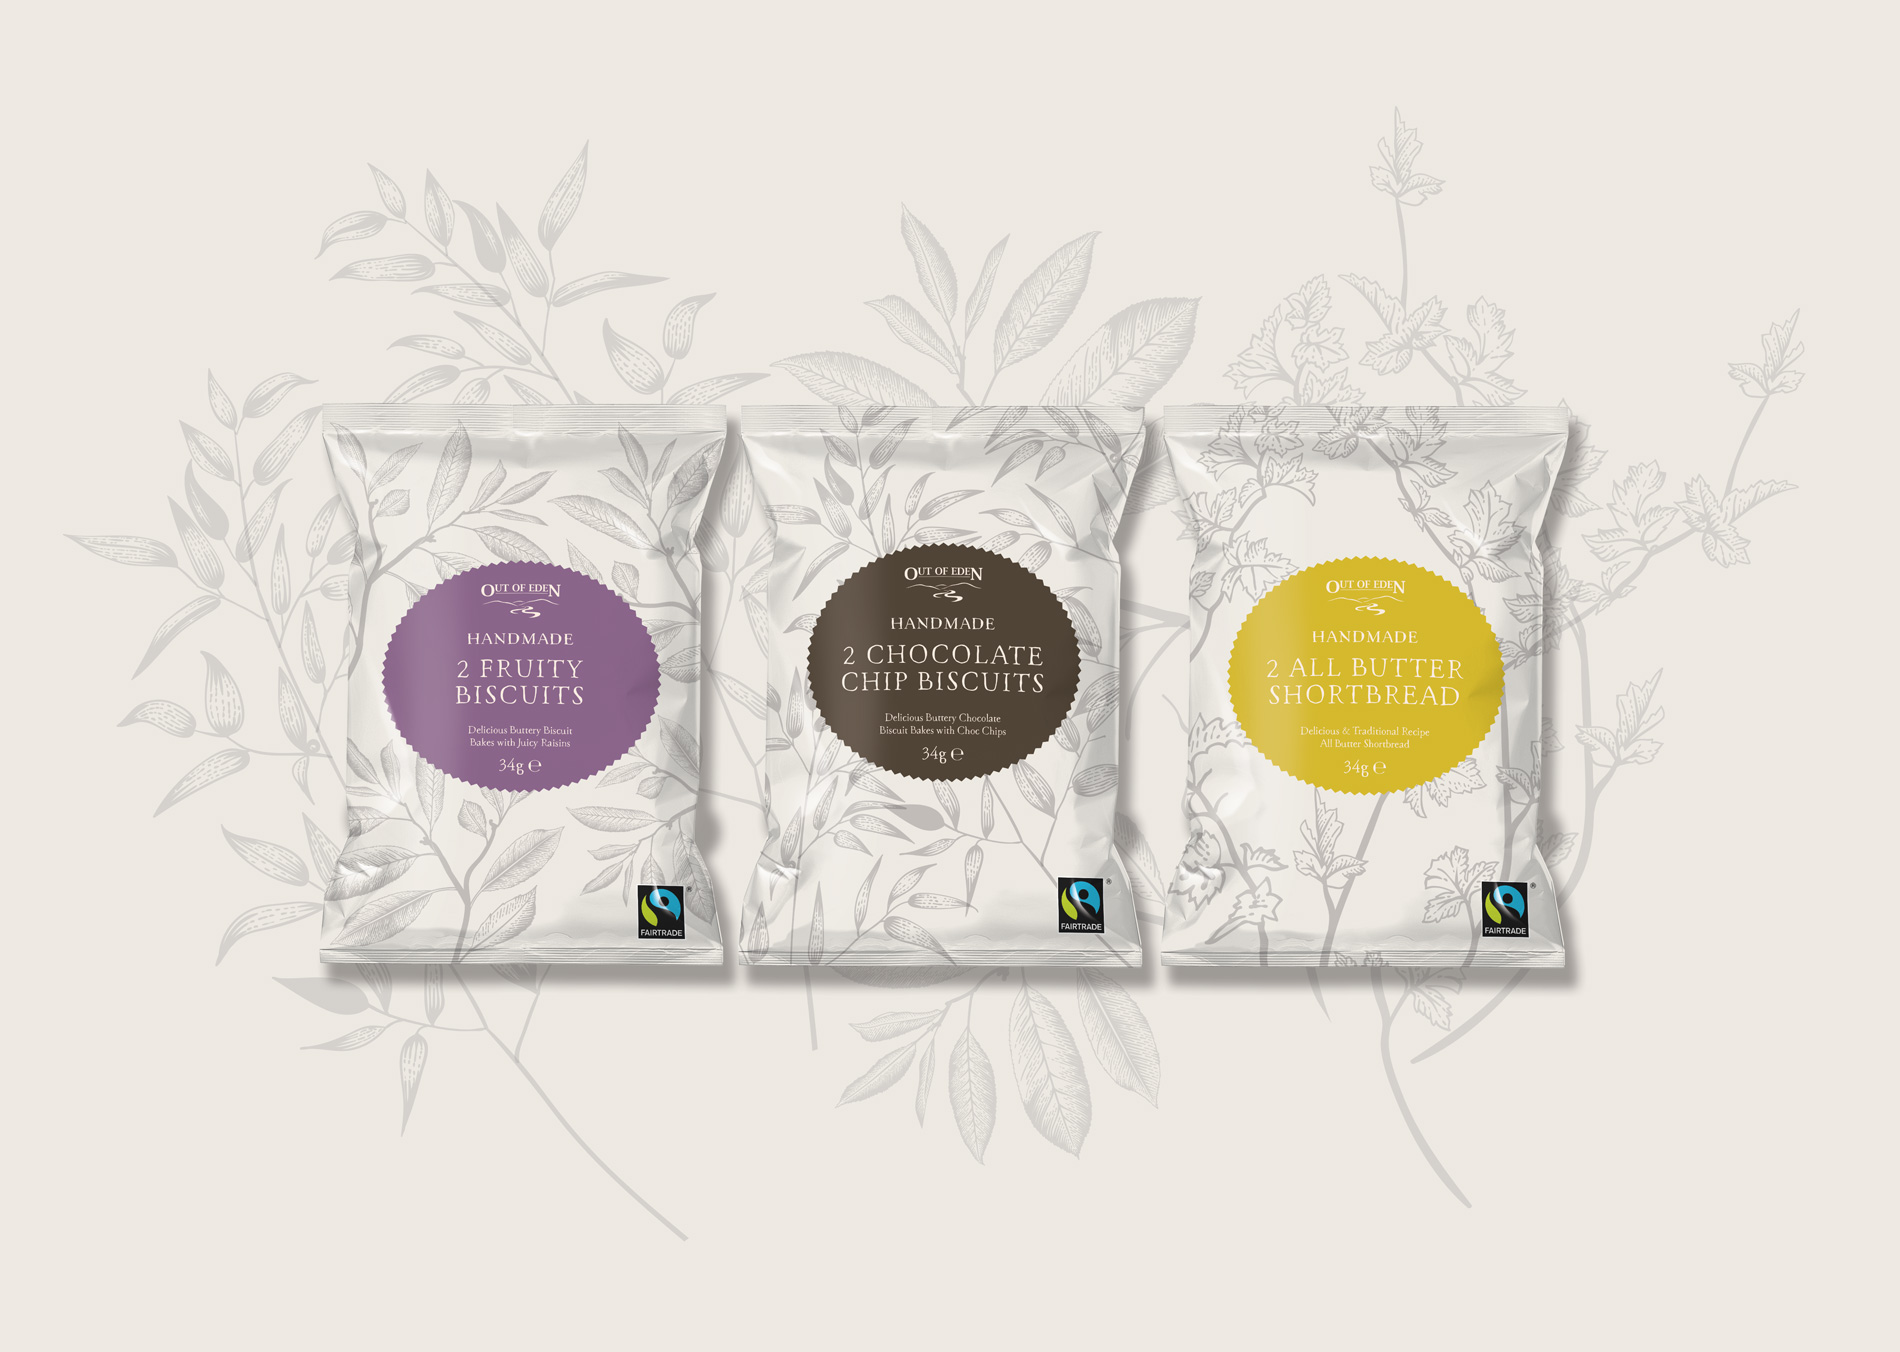 Out of Eden - Biscuit Packaging Design Concepts